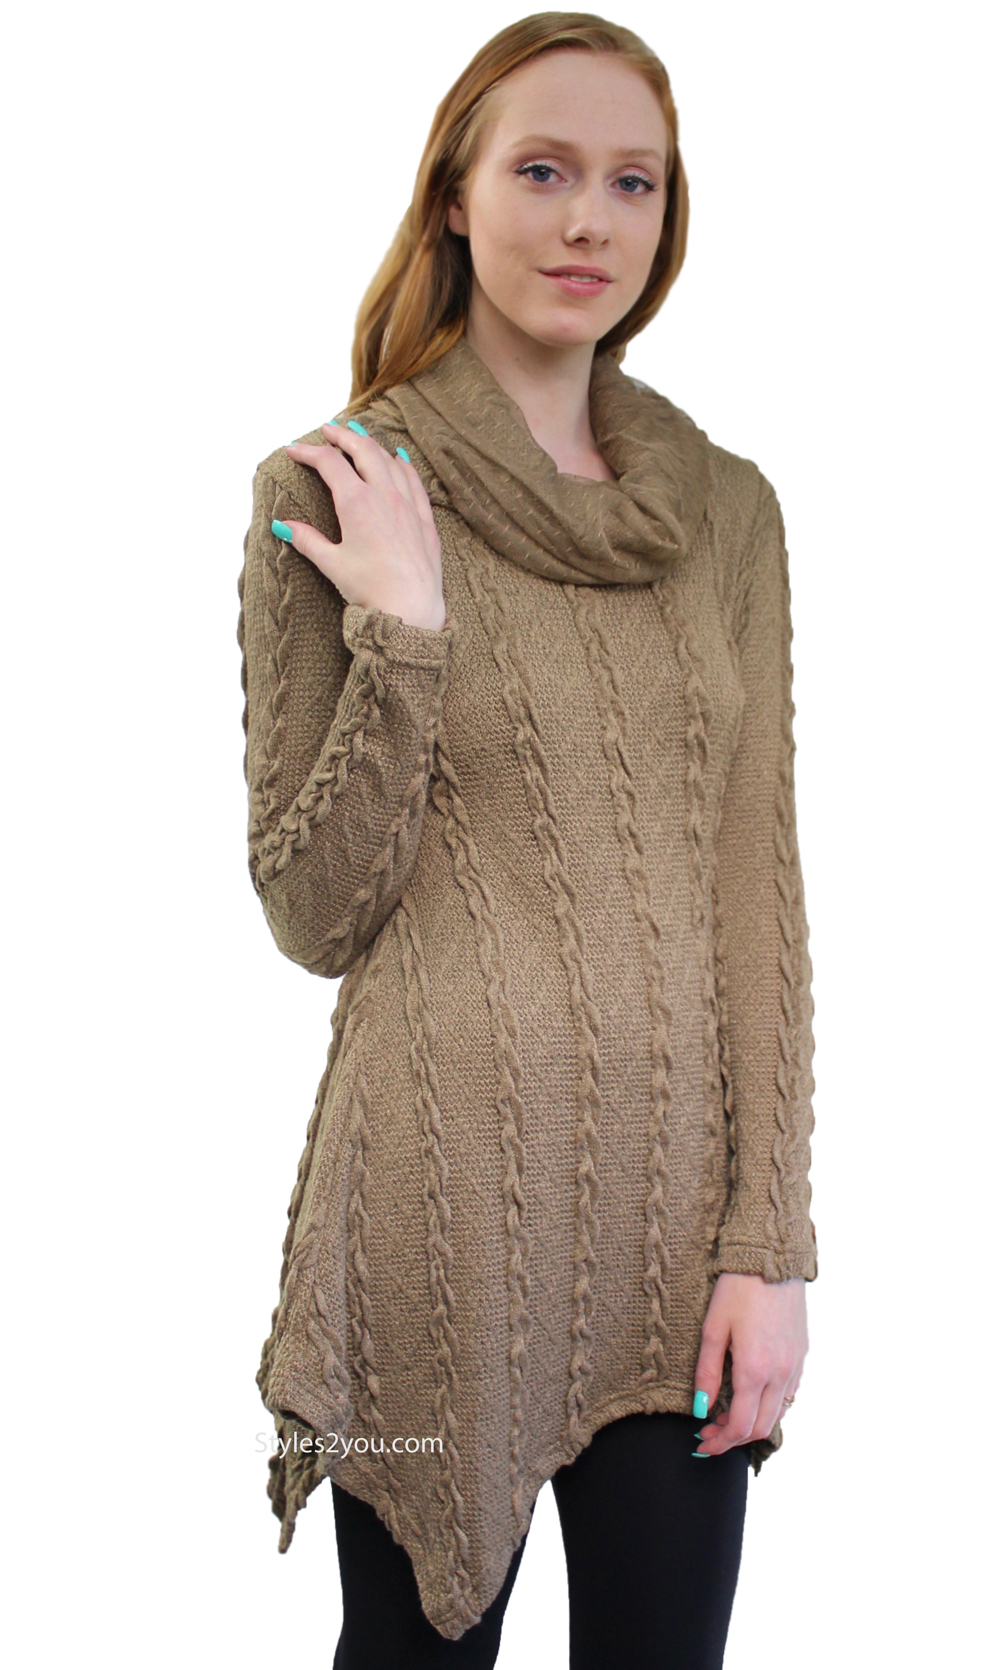 Tegan ladies cable knit sweater shirt dress in brown for Dress shirt with sweater